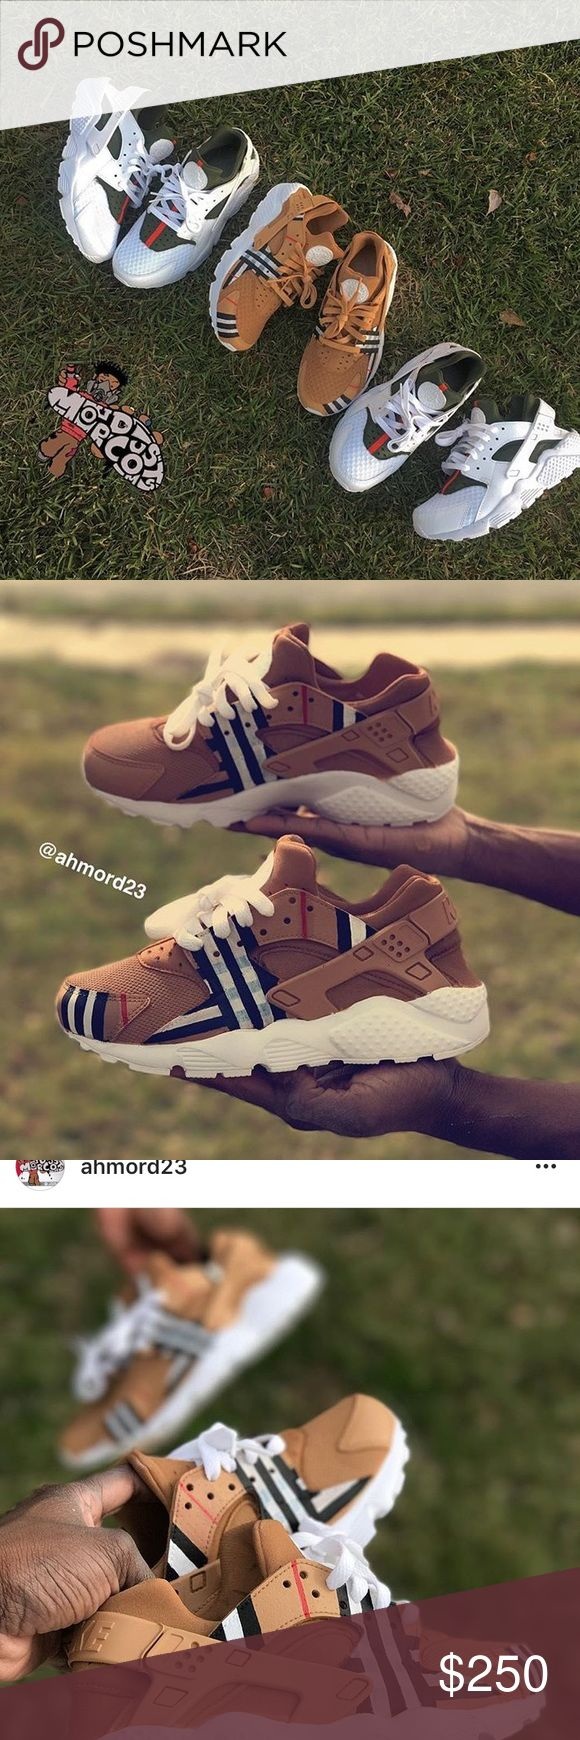 Custom huaraches Burberry custom nikes ‼️‼️‼️‼️‼️ check out website or Instagram page > @ahmord23 Burberry Shoes Sneakers